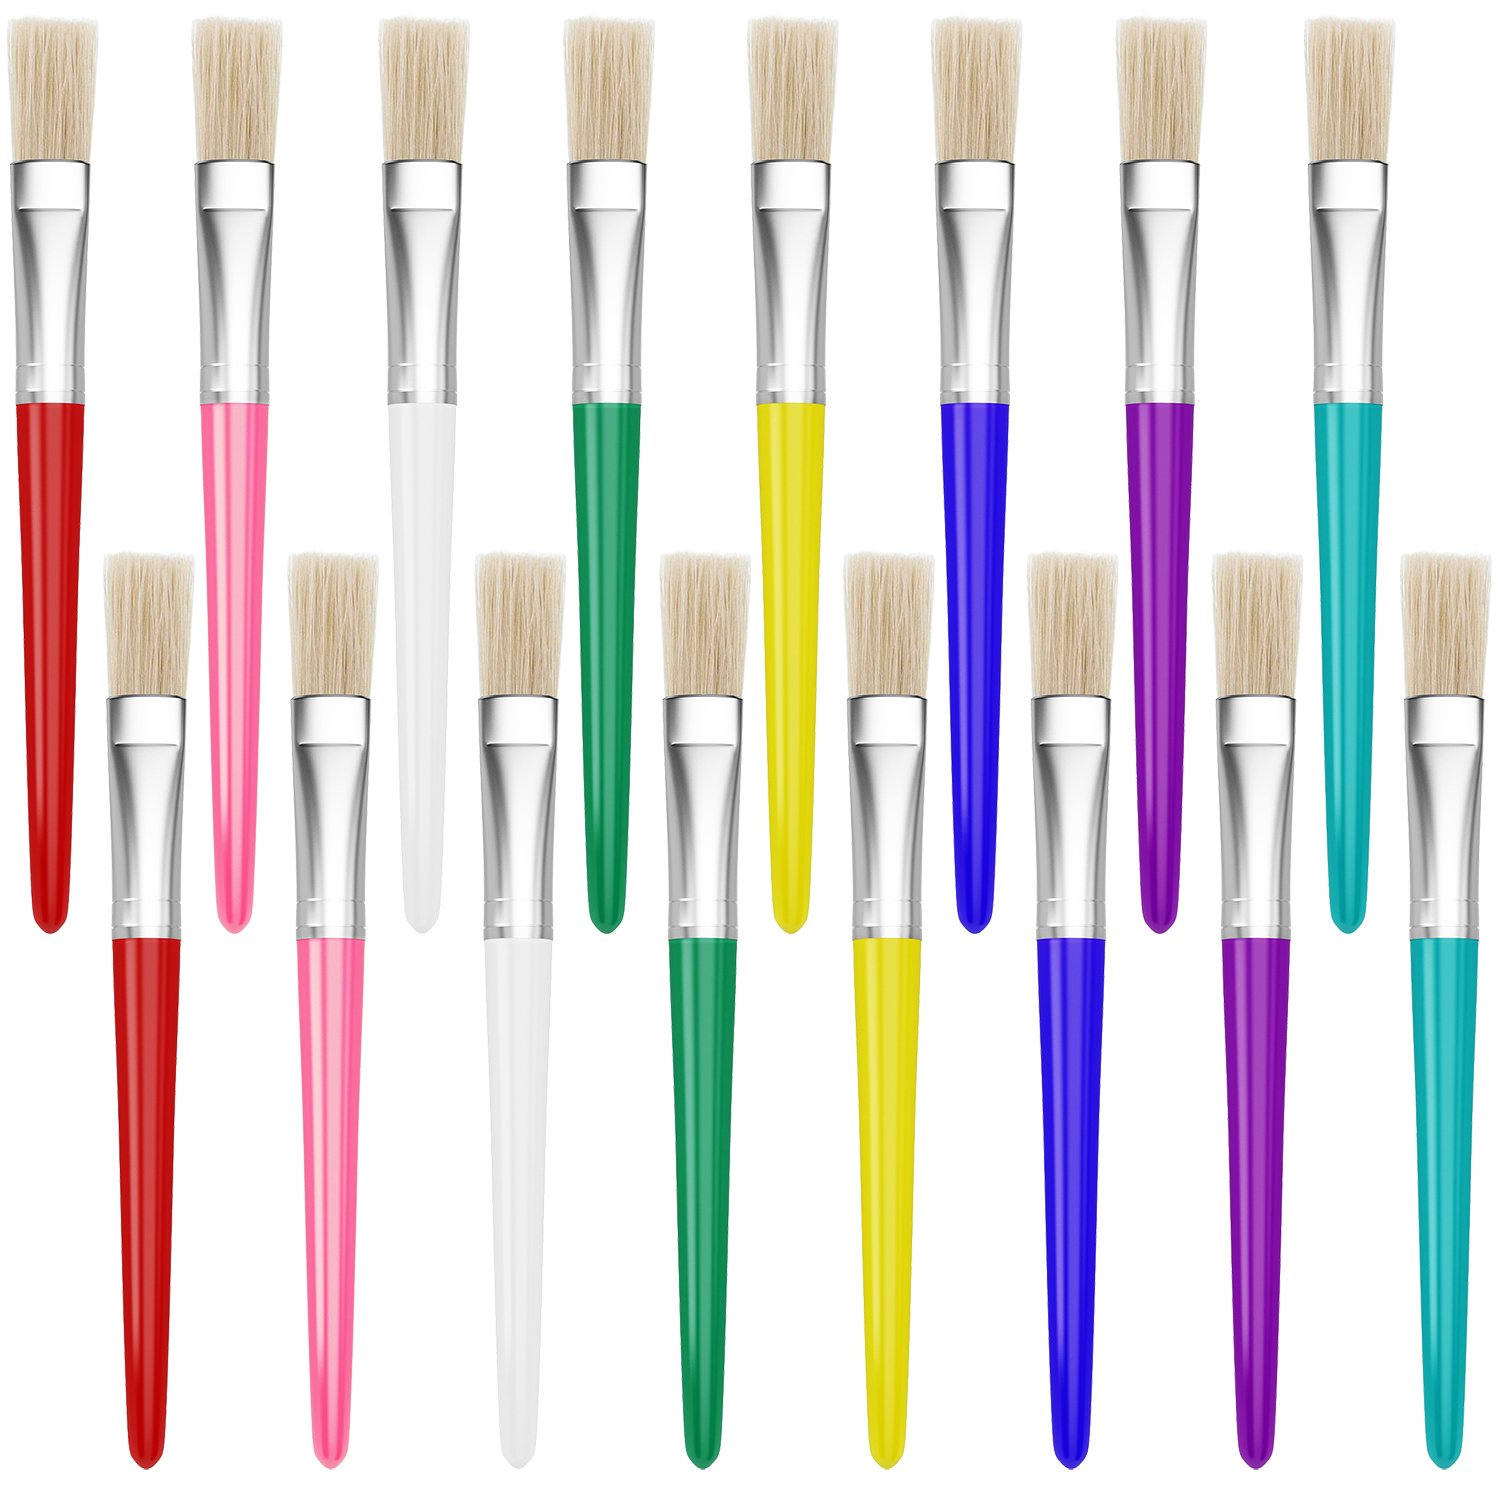 16 Piece Large Flat Tip Paint Brushes Hog Bristle Tempera and Artist Paint Brushes for Kids with Short Stubby Plastic Handle-Assorted Colors Leyaron 003-PB-1